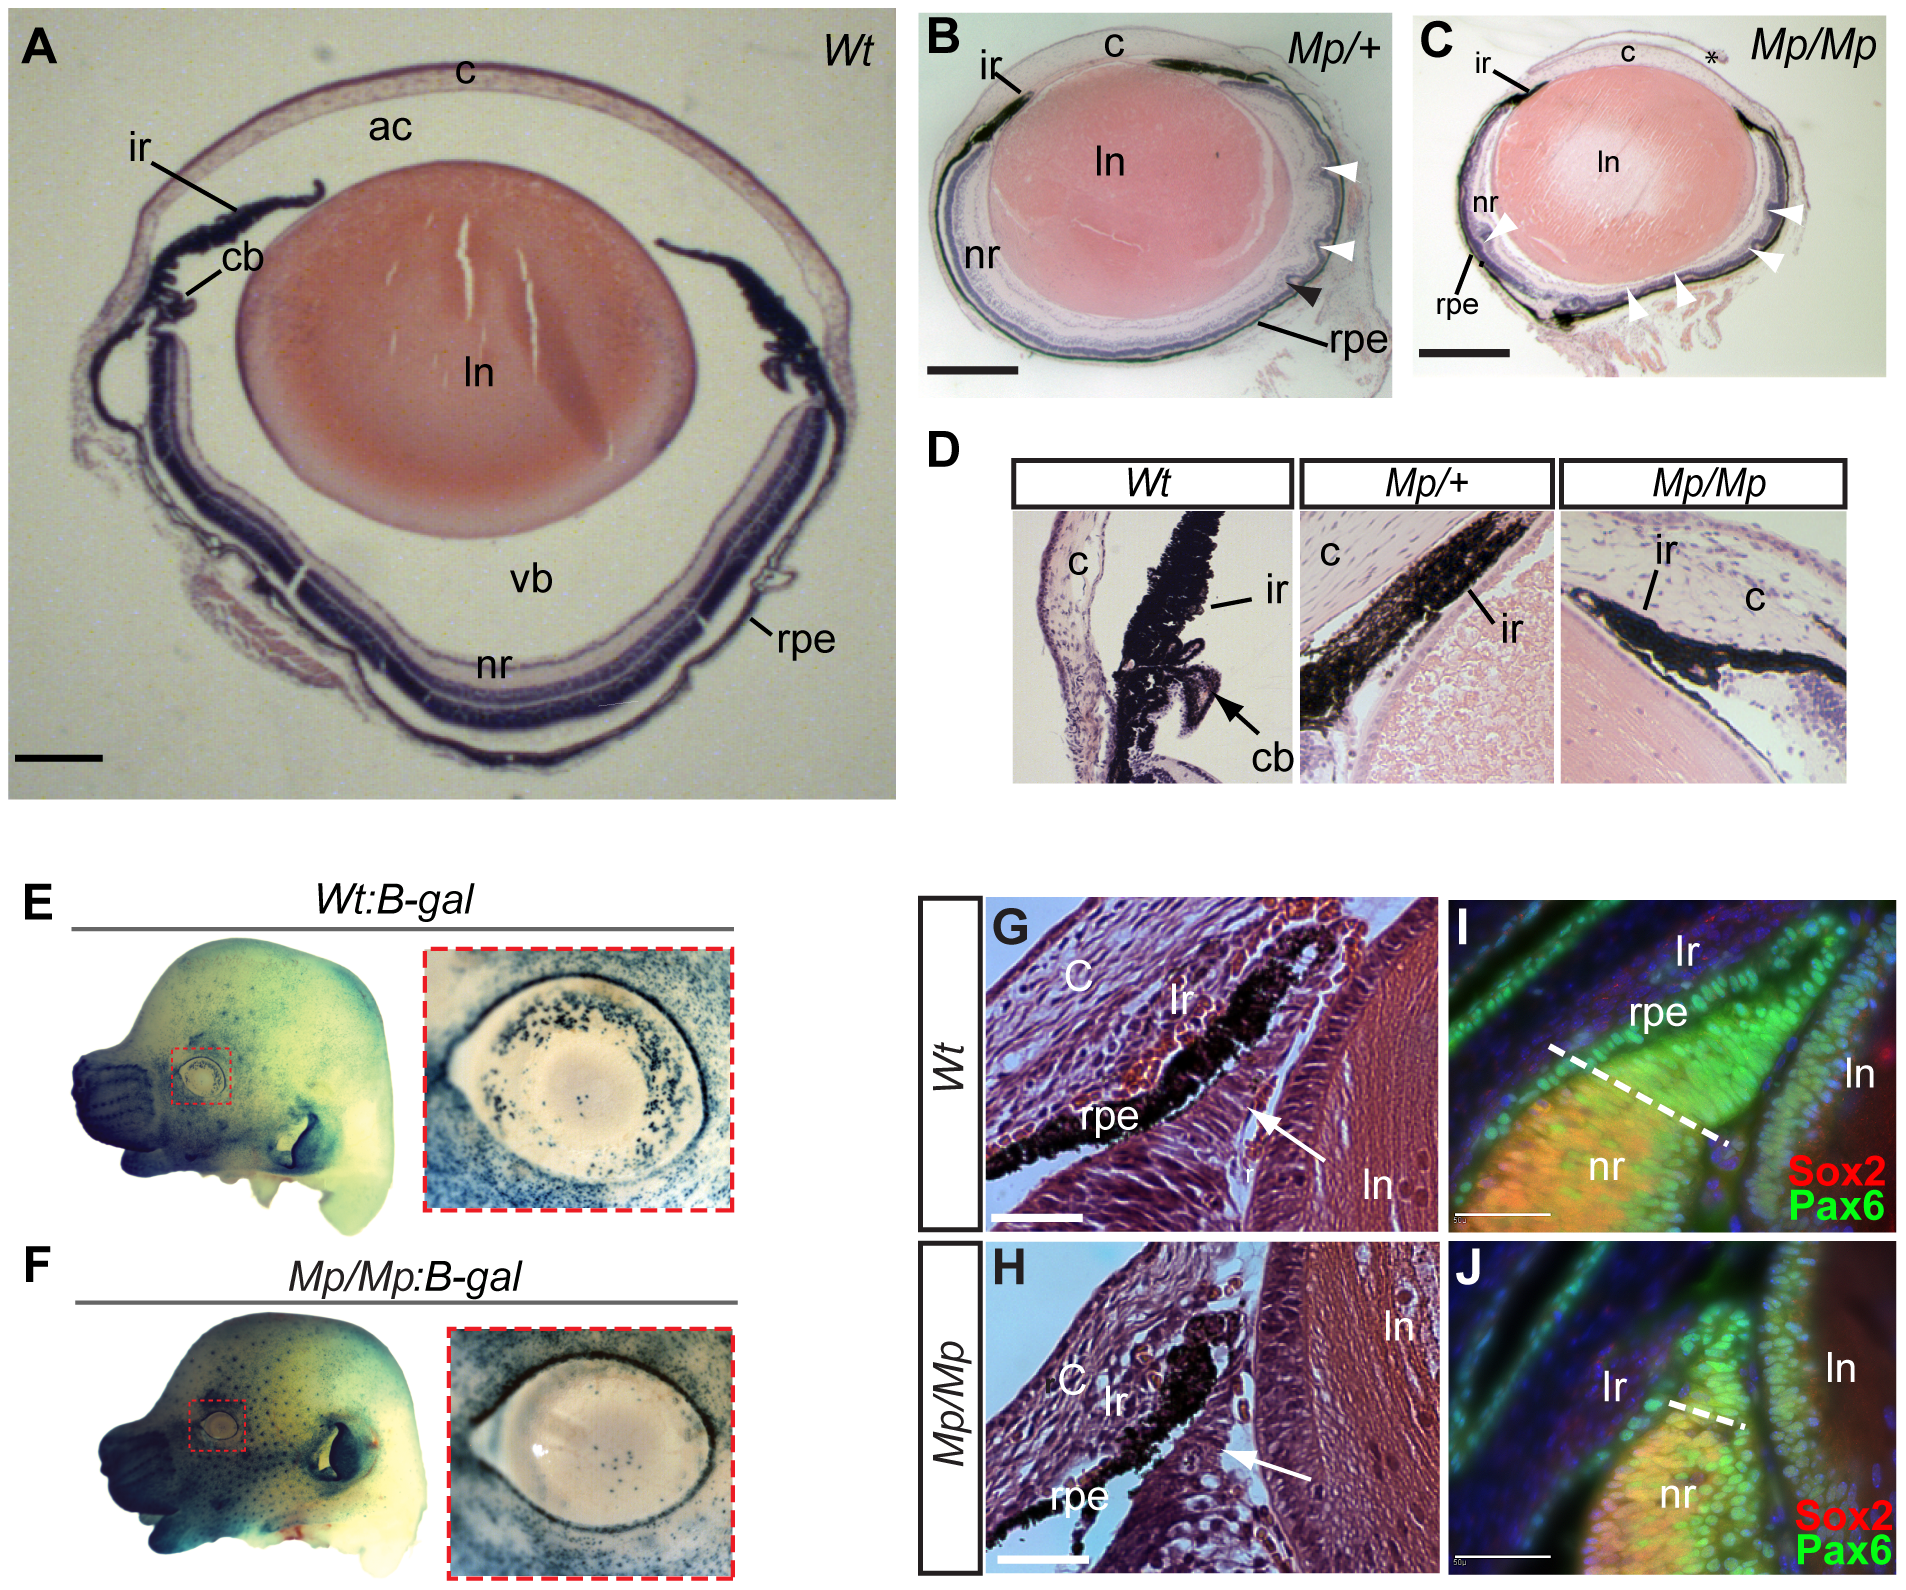 <i>Mp</i> eyes displayed structural defects and abnormal ciliary development.